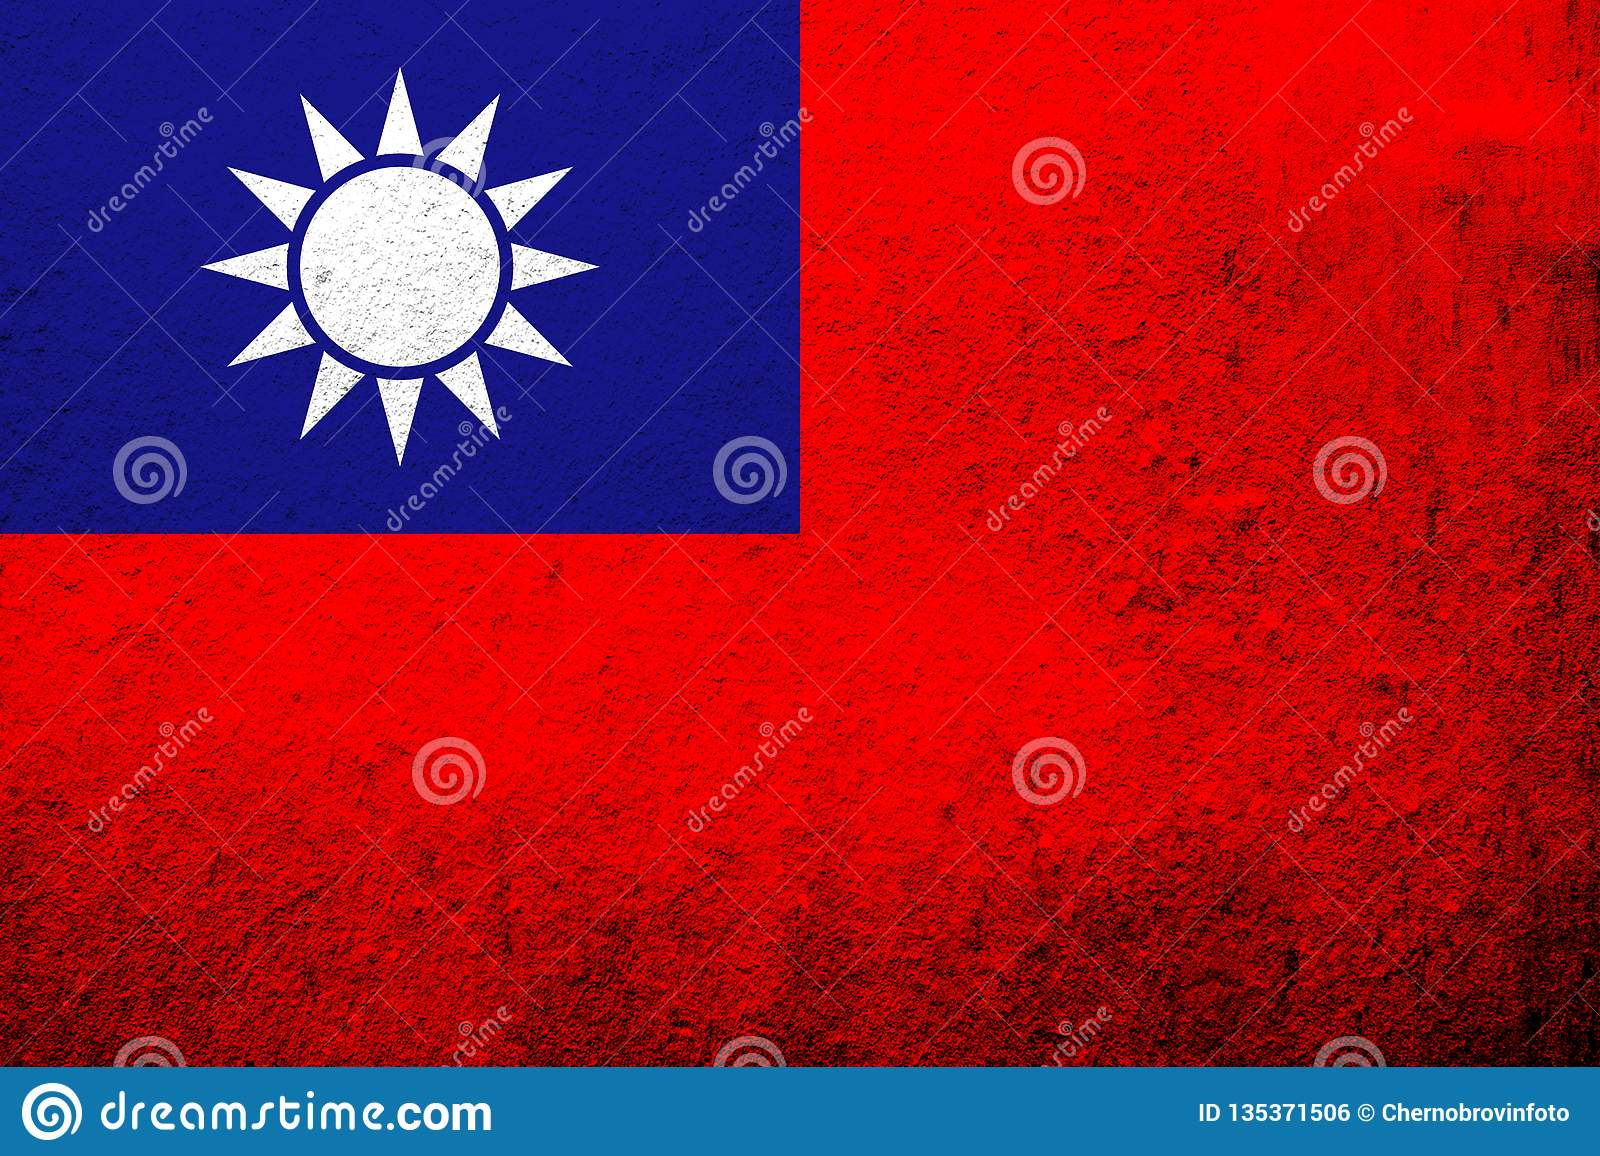 The Republic of China Taiwan National flag `Blue Sky, White Sun, and a Wholly Red Earth`. Grunge background